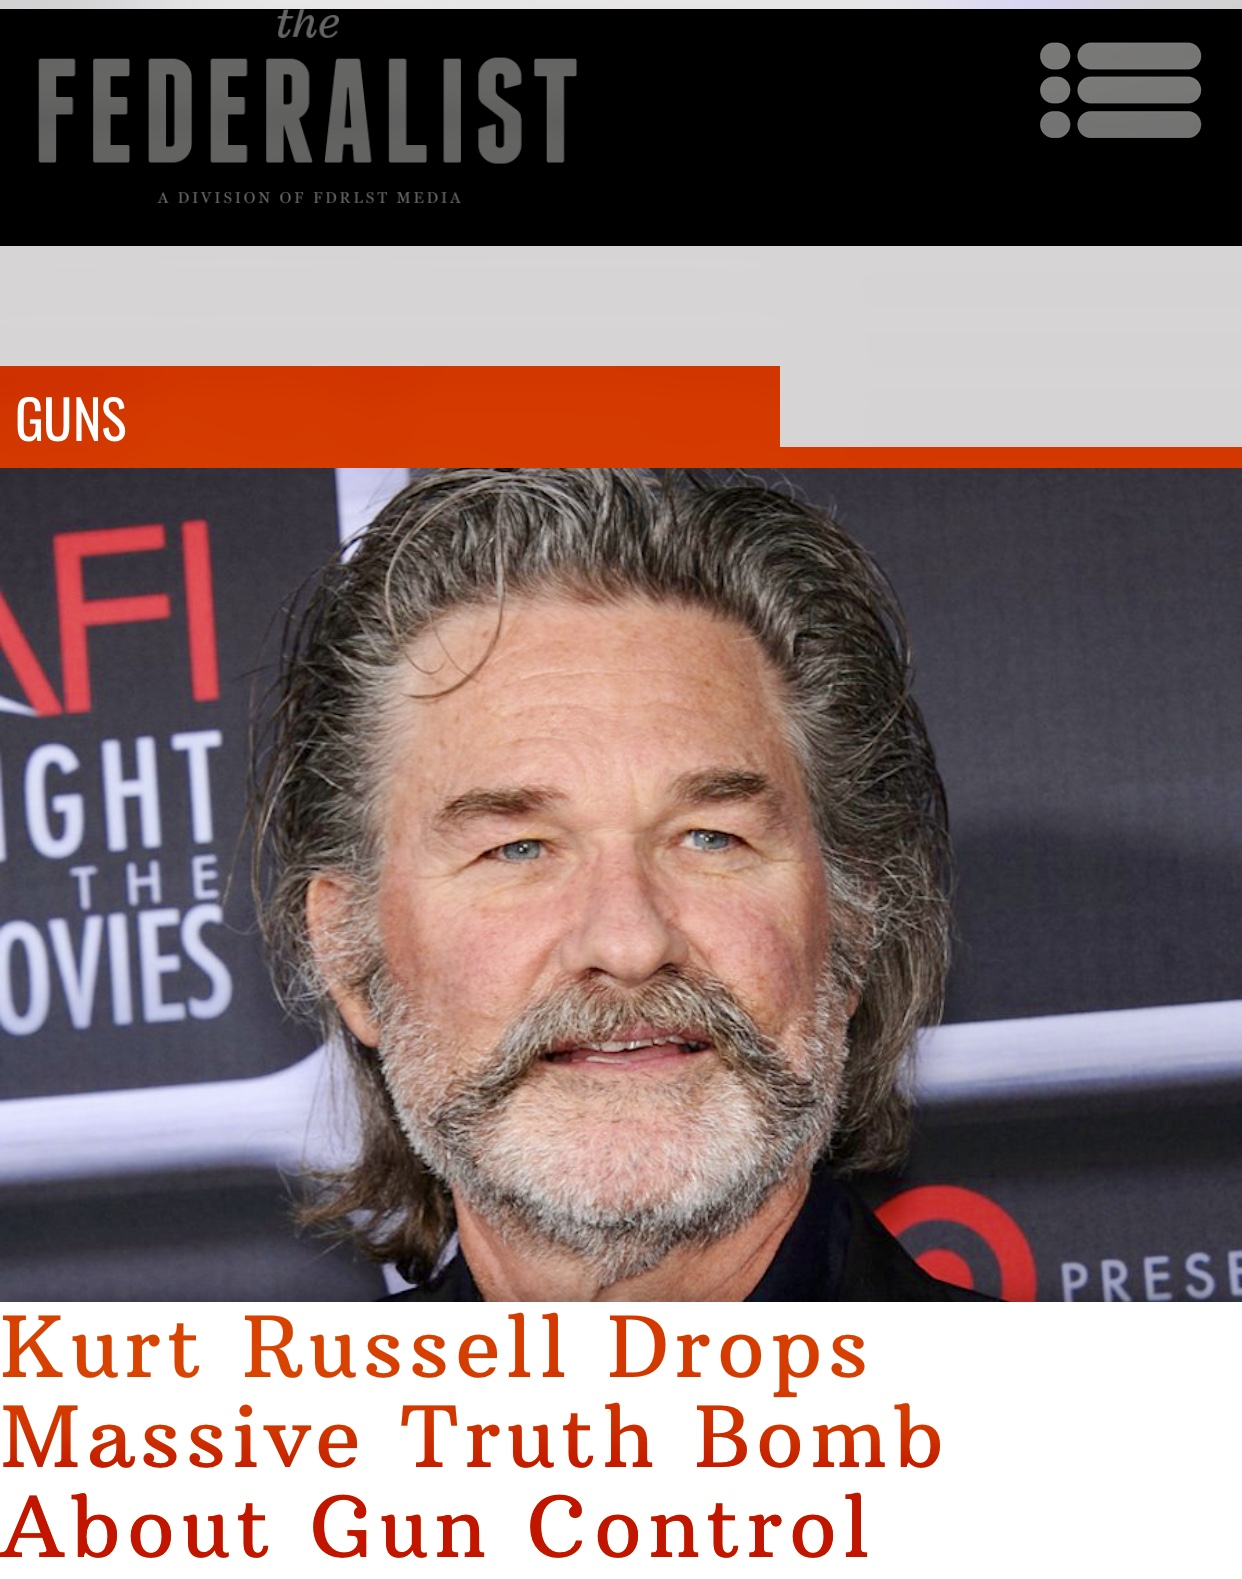 Kurt Russell Drops Massive Truth Bomb About Gun Control